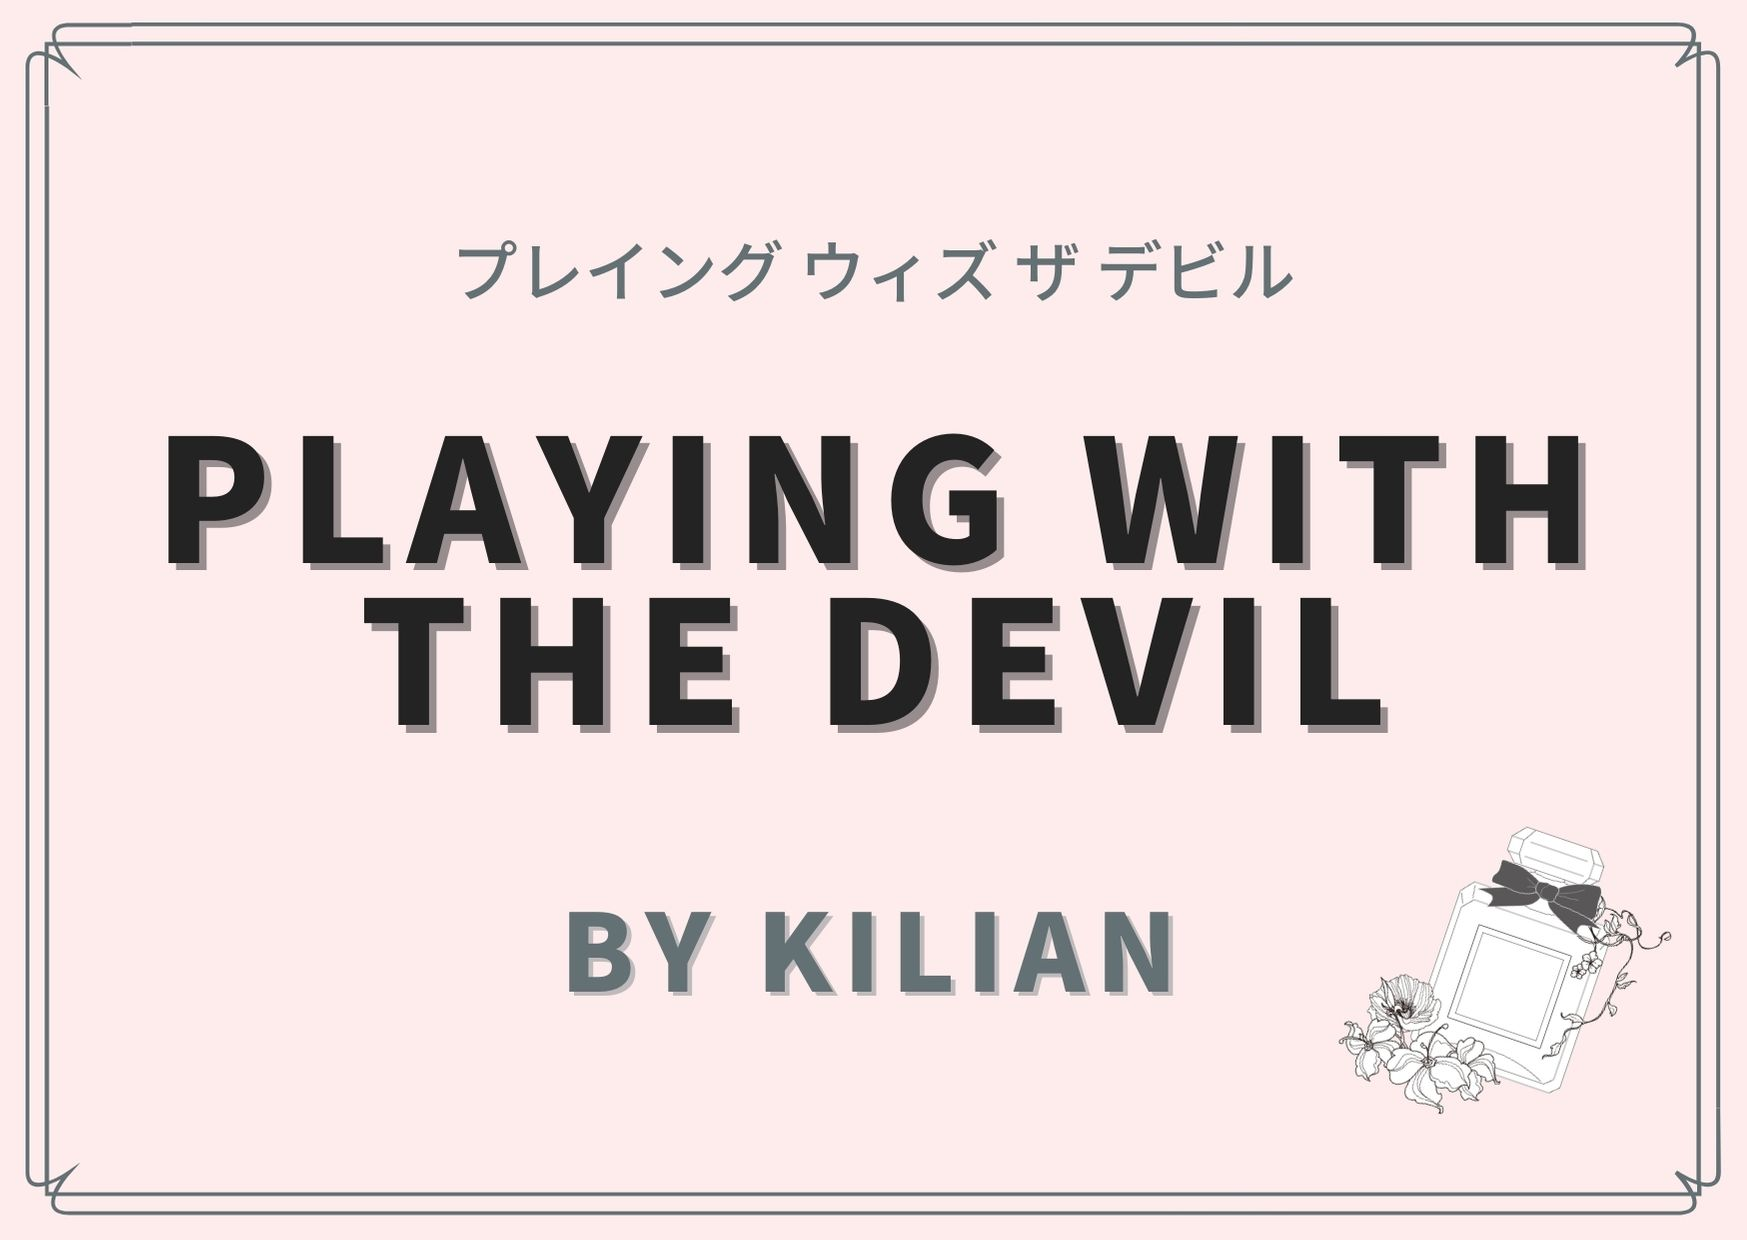 Playing with the Devil(プレイング ウィズ ザ デビル)/ By Kilian(バイ キリアン)